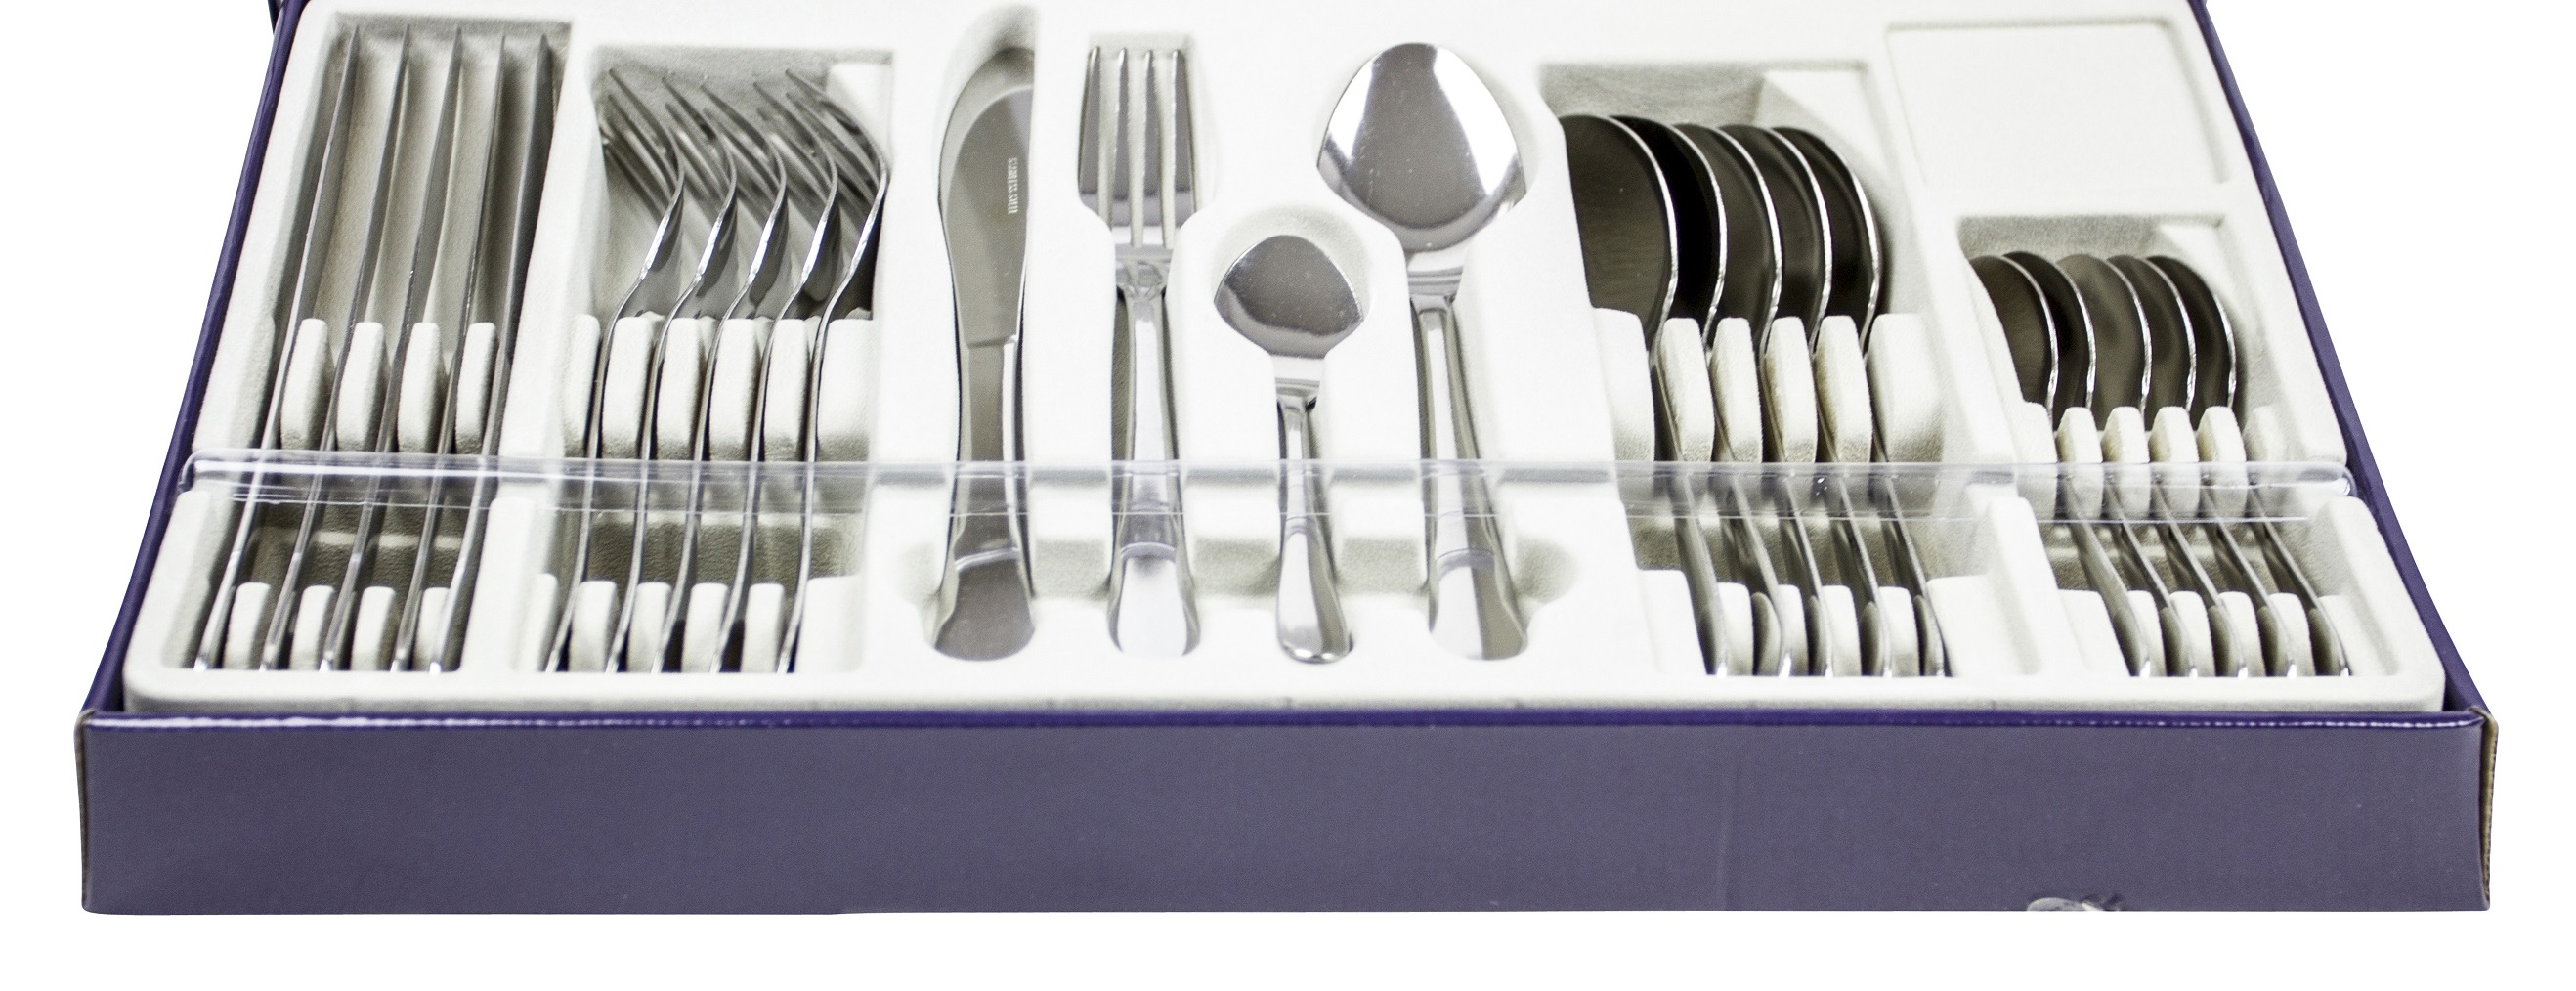 24 Piece Stylish Kitchen Stainless Steel Cutlery Set Tableware Dining Utensils Ebay